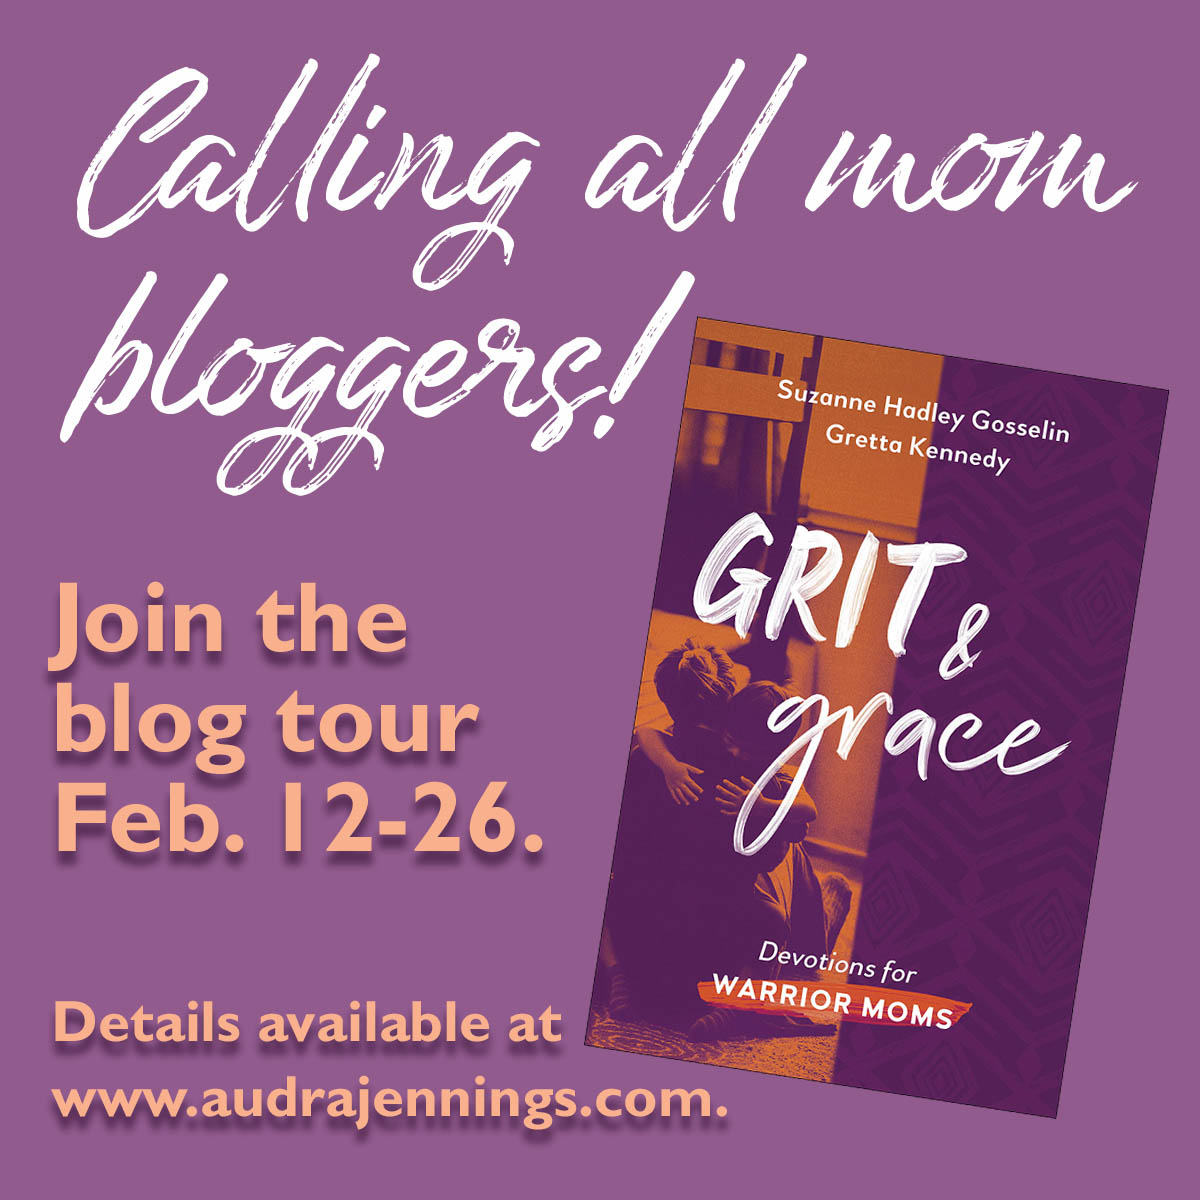 Join the Grit and Grace blog tour